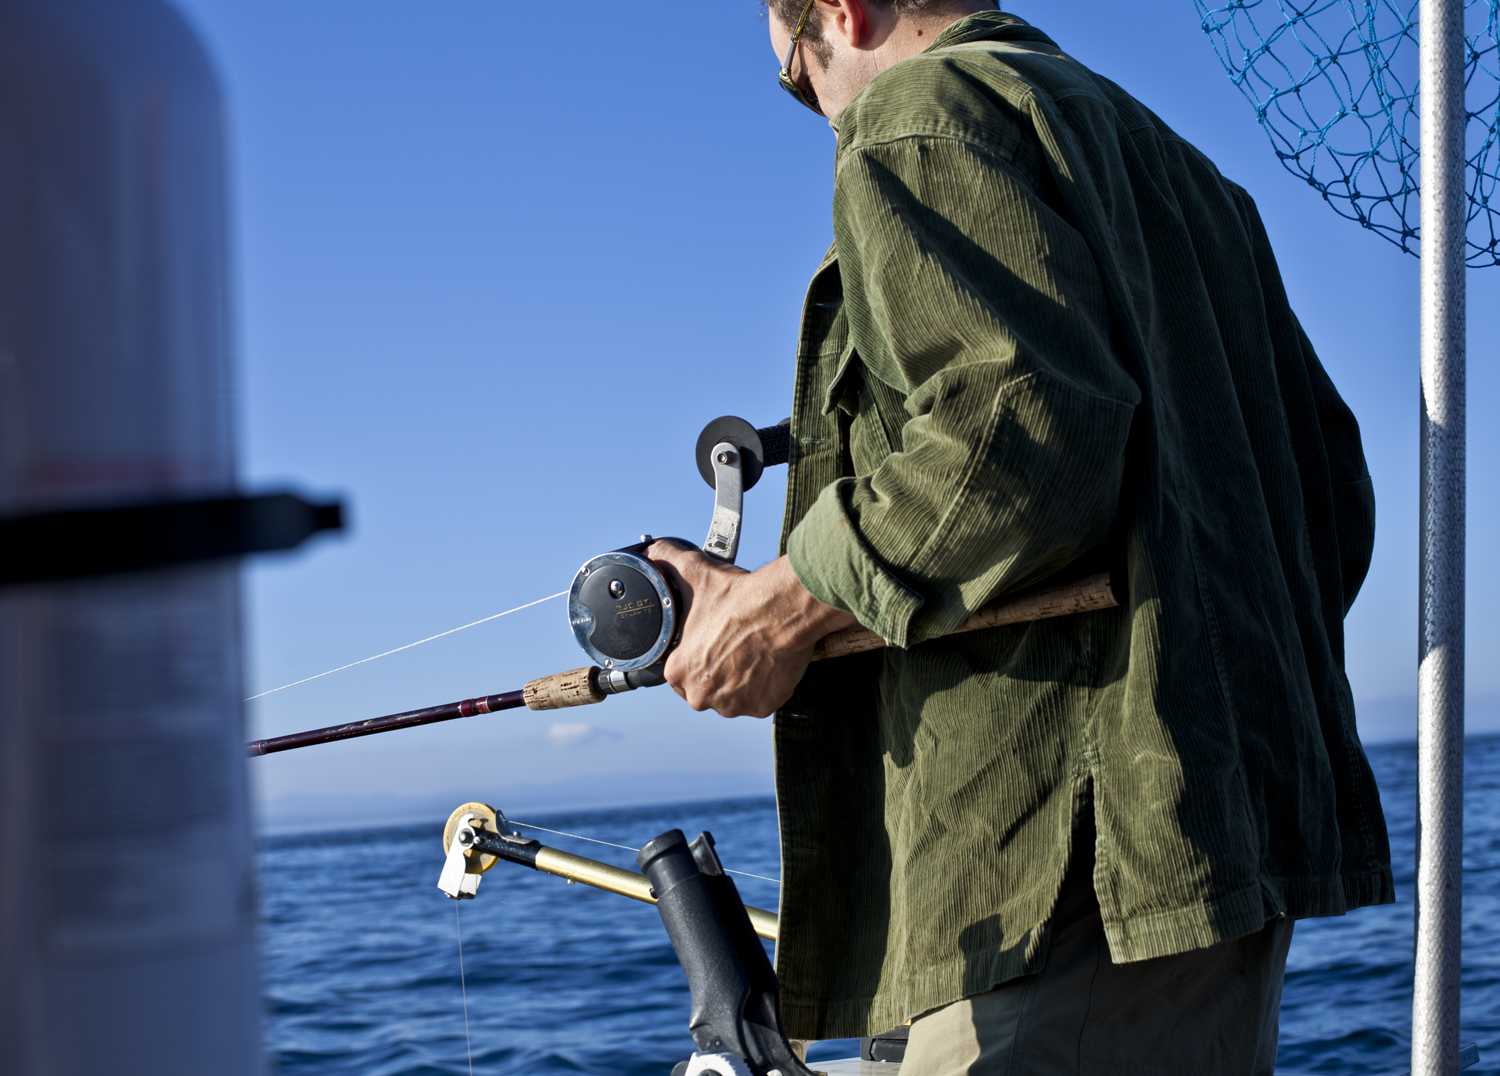 Steve preparing a rod while salmon fishing in the Strait of Juan de Fuca.